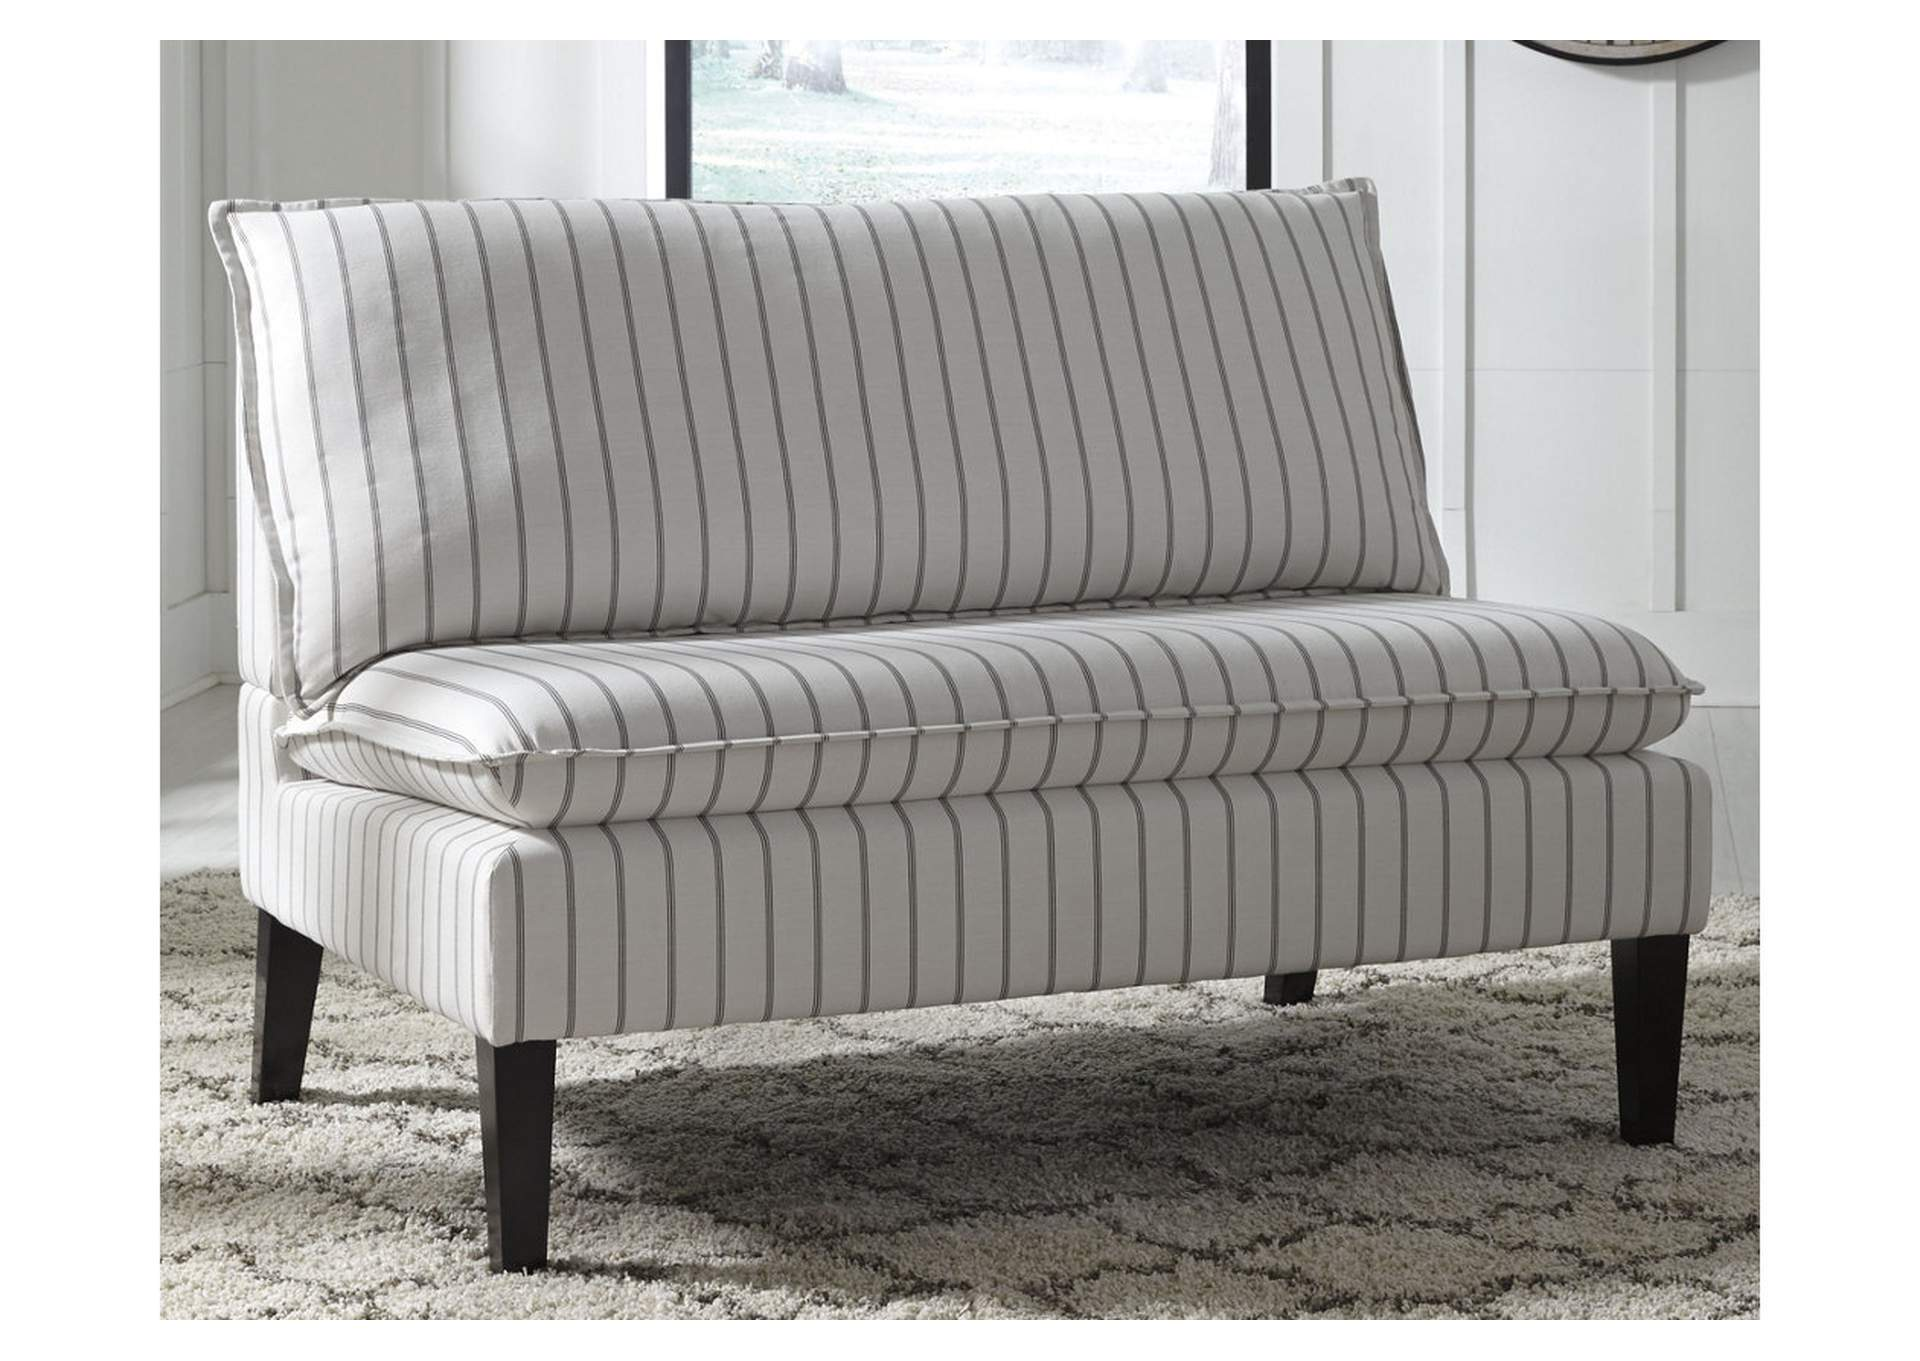 Arrowrock White/Gray Accent Bench,Direct To Consumer Express